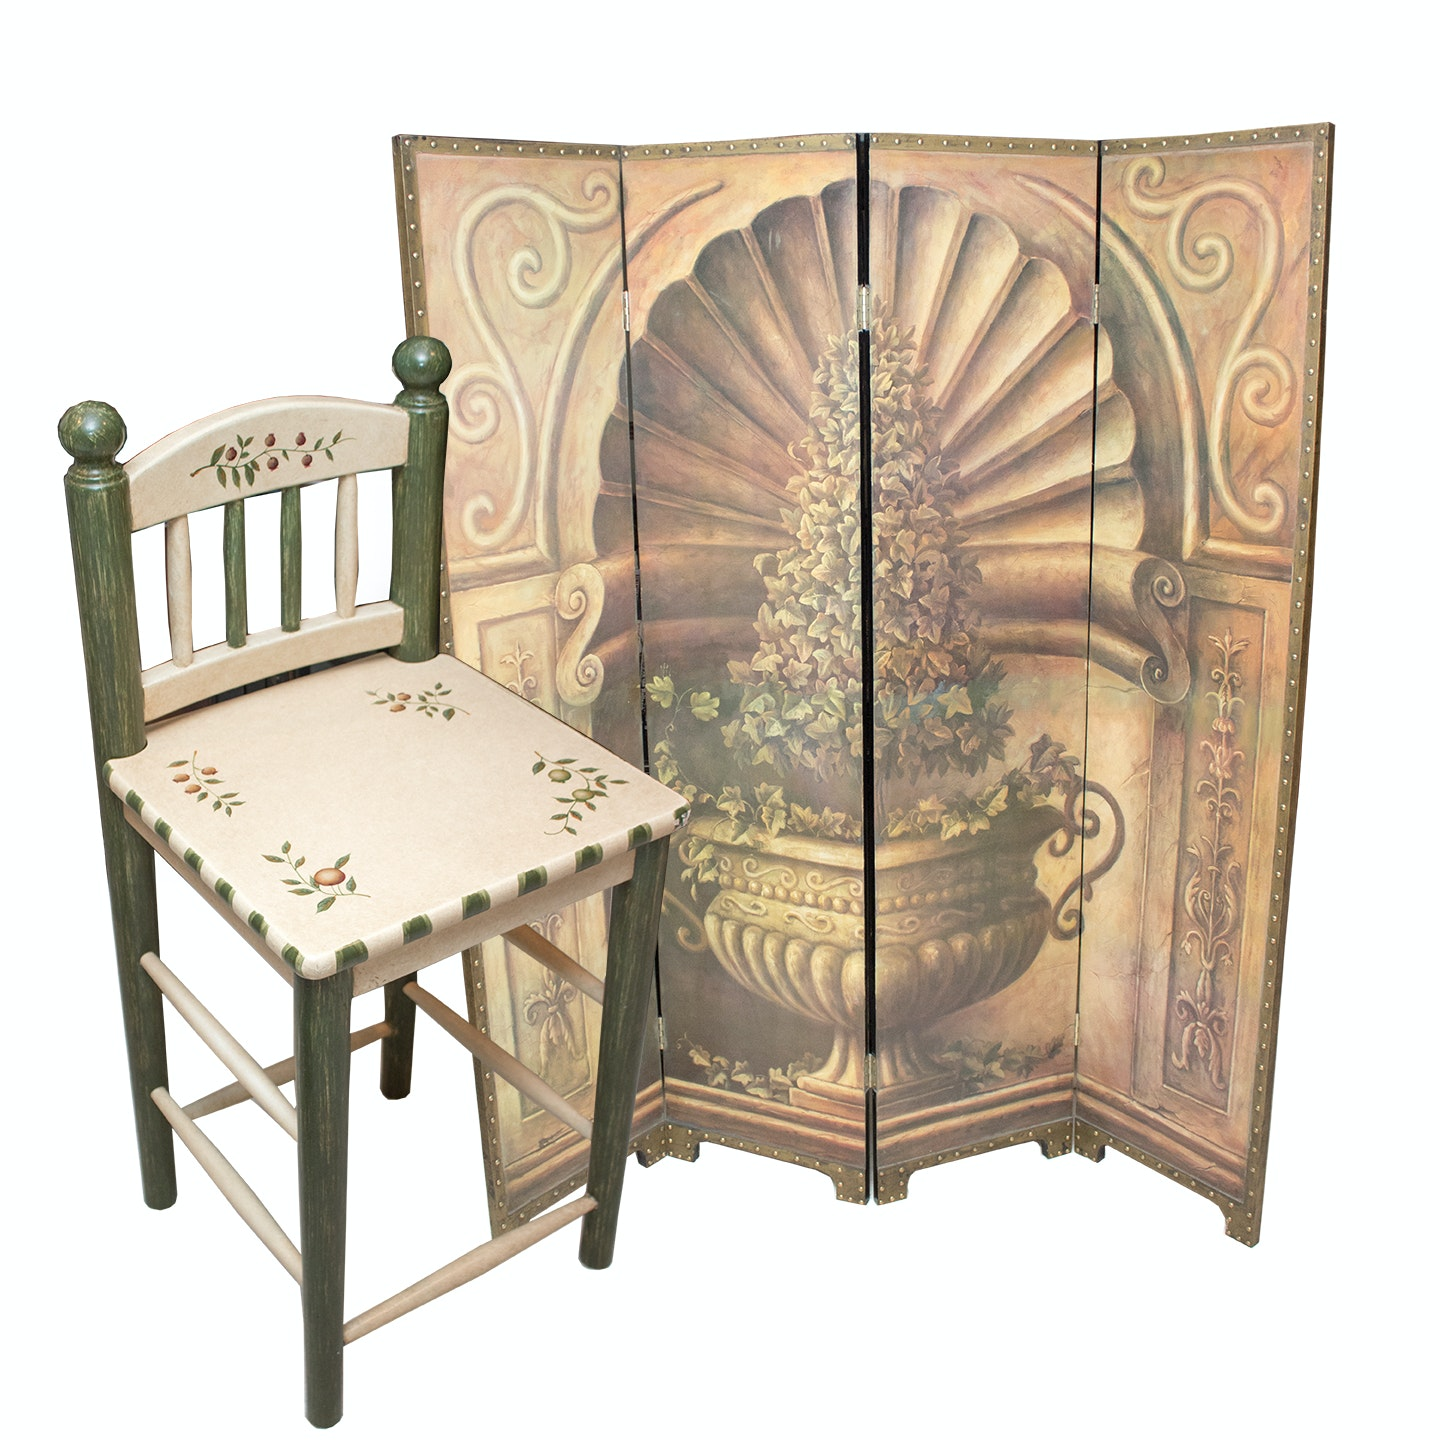 Stenciled Mediterranean Style Room Divider and Bar Chair